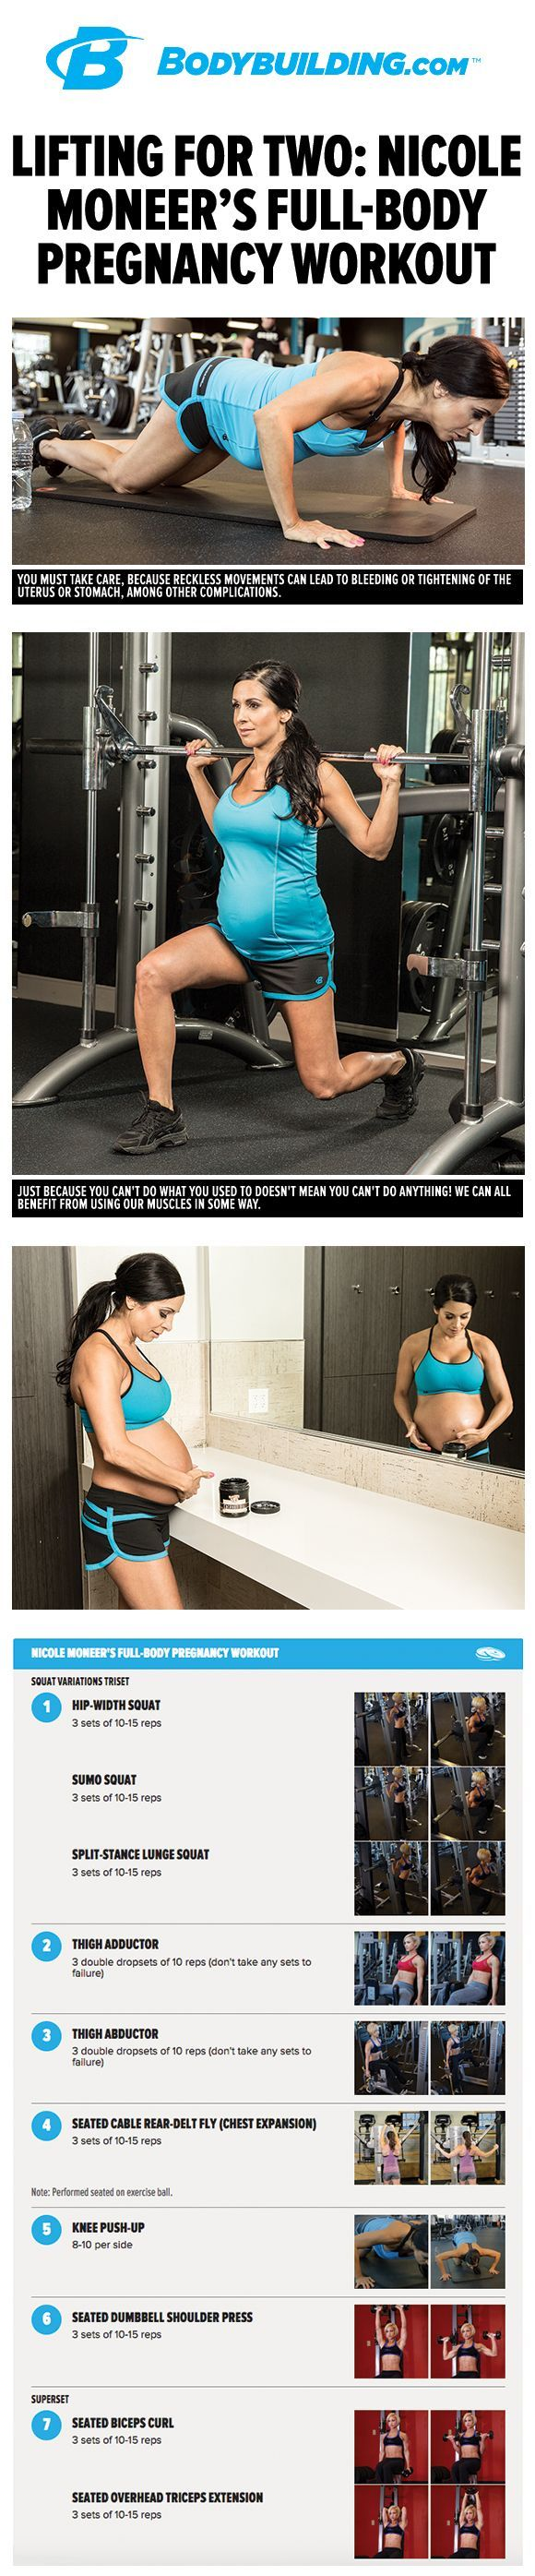 Lifting For Two: Nicole Moneer's Full-Body Pregnancy Workout. The weights don't always have to go back on the rack when you find out you're pregnant. Here's how http://Bodybuilding.com athlete Nicole Moneer modified her workouts and kept training into the third trimester!